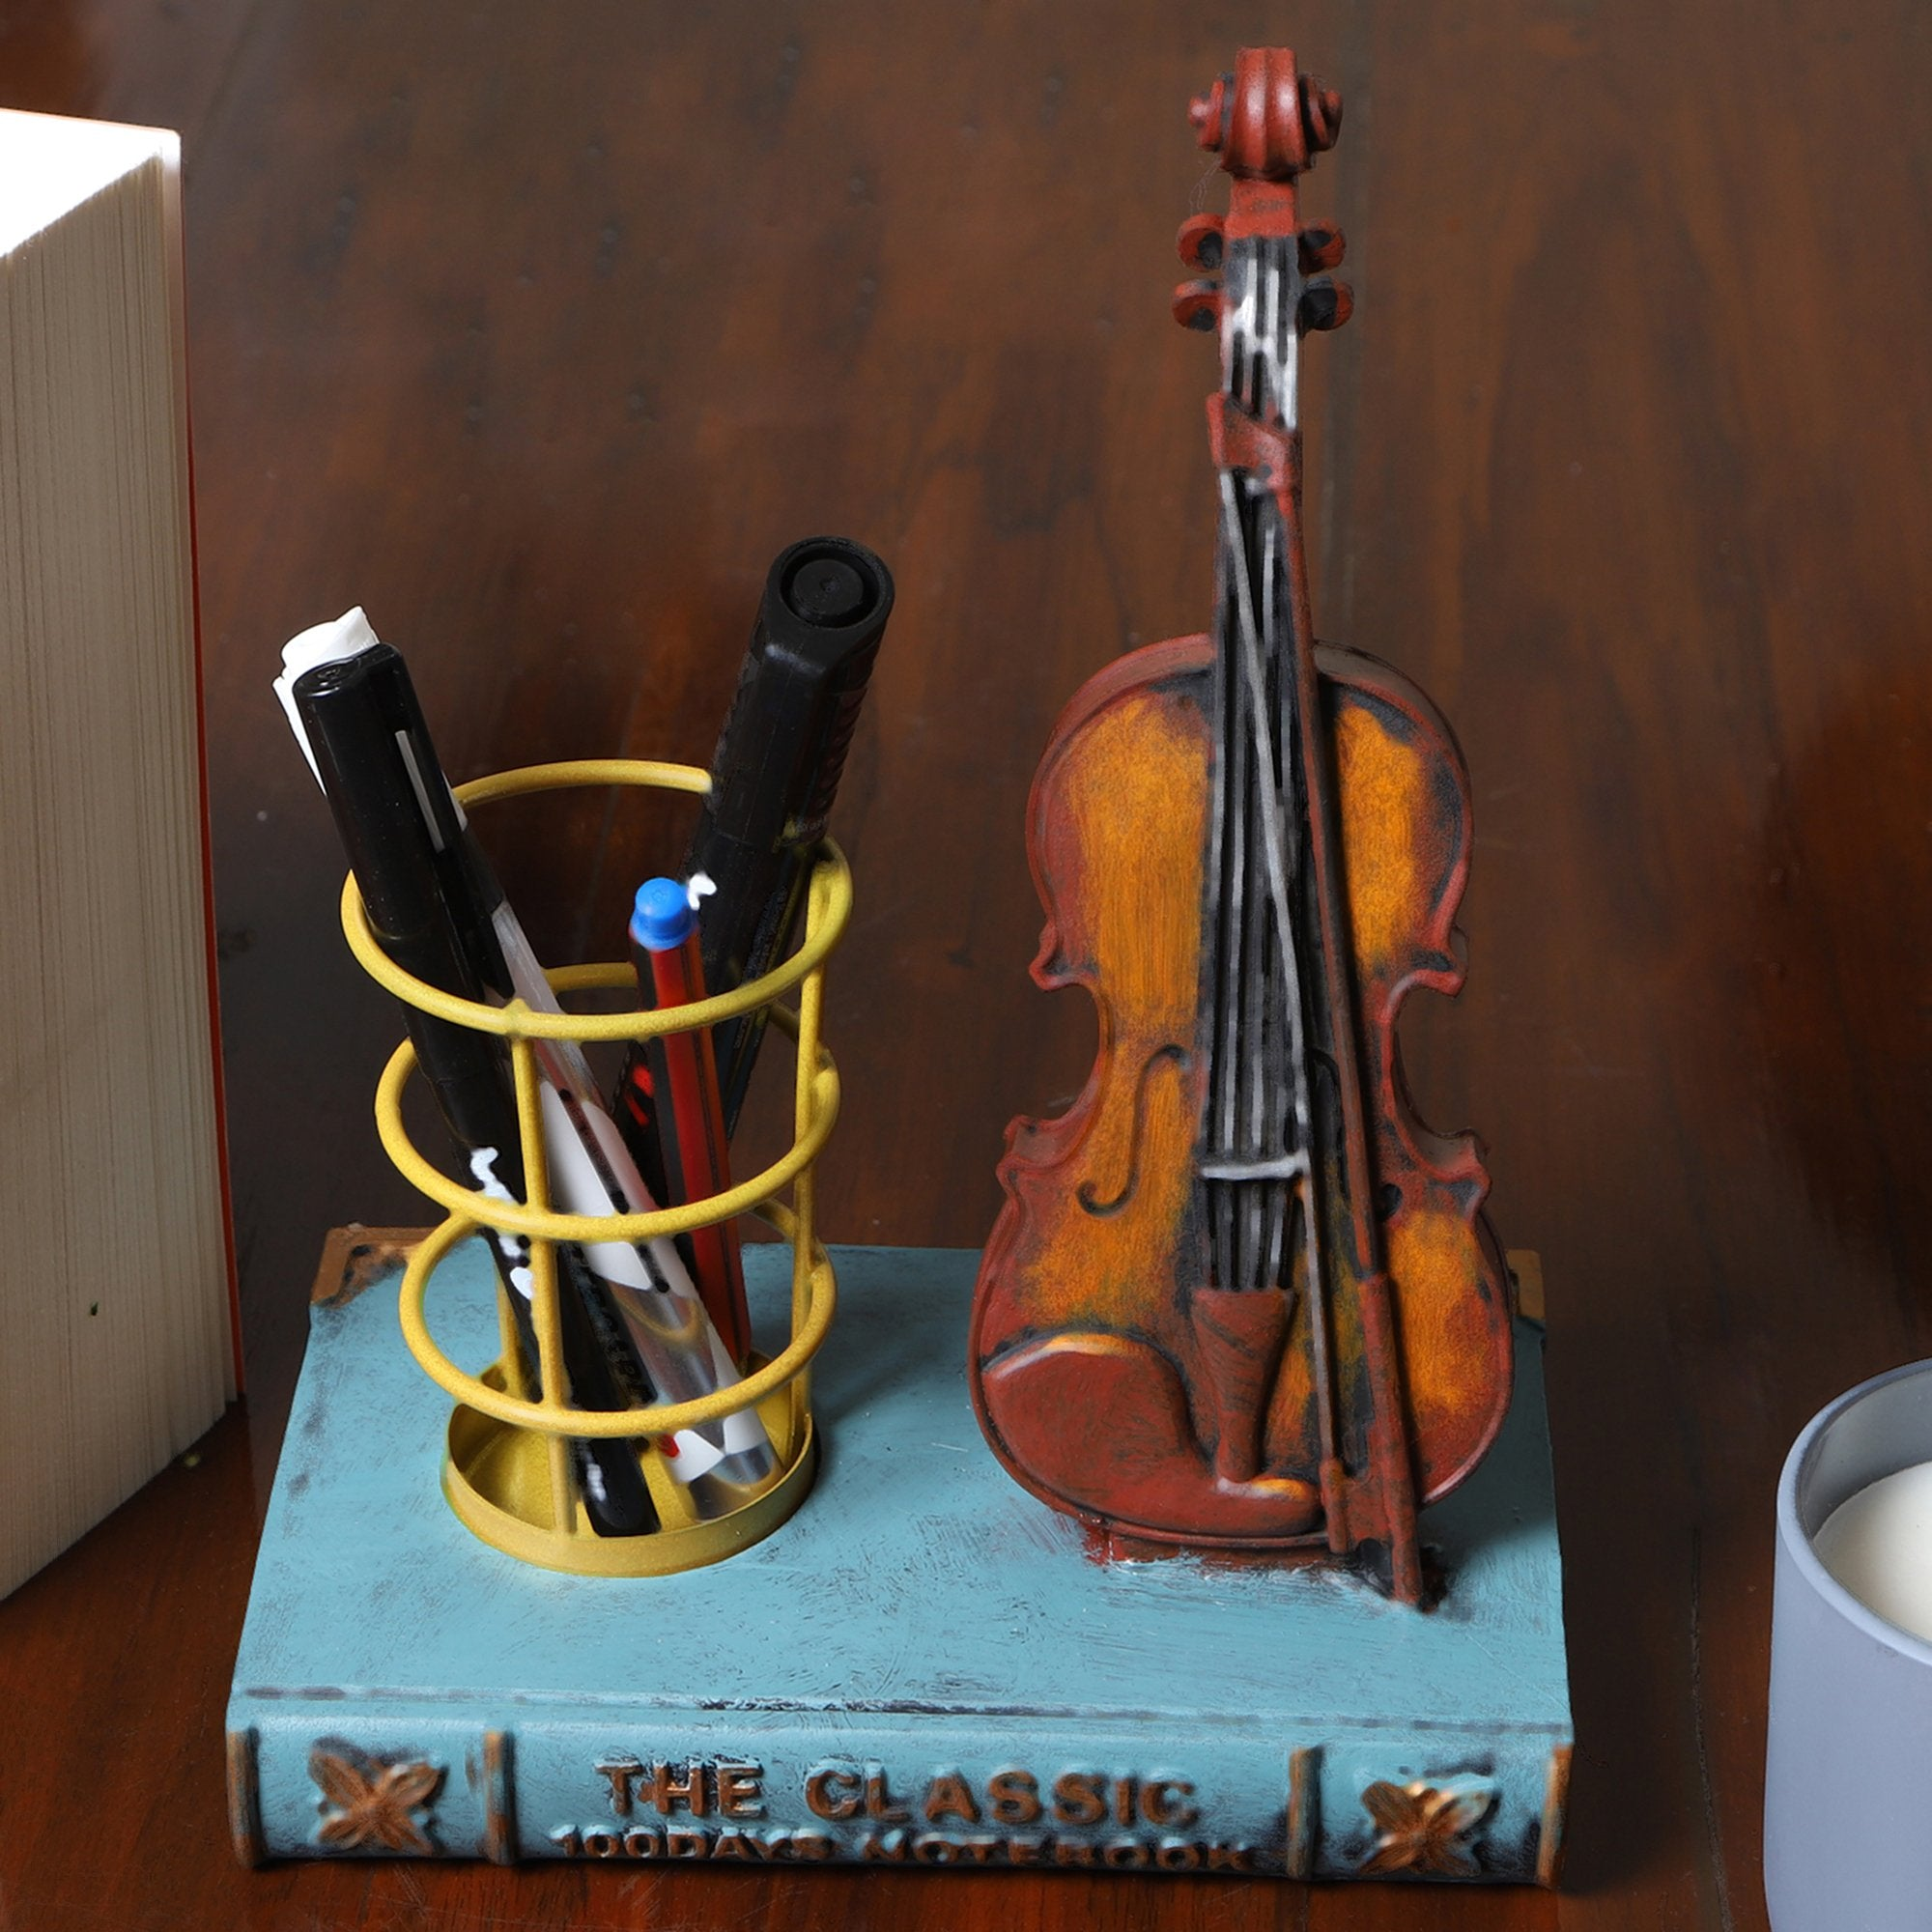 Light Blue book with Guitar